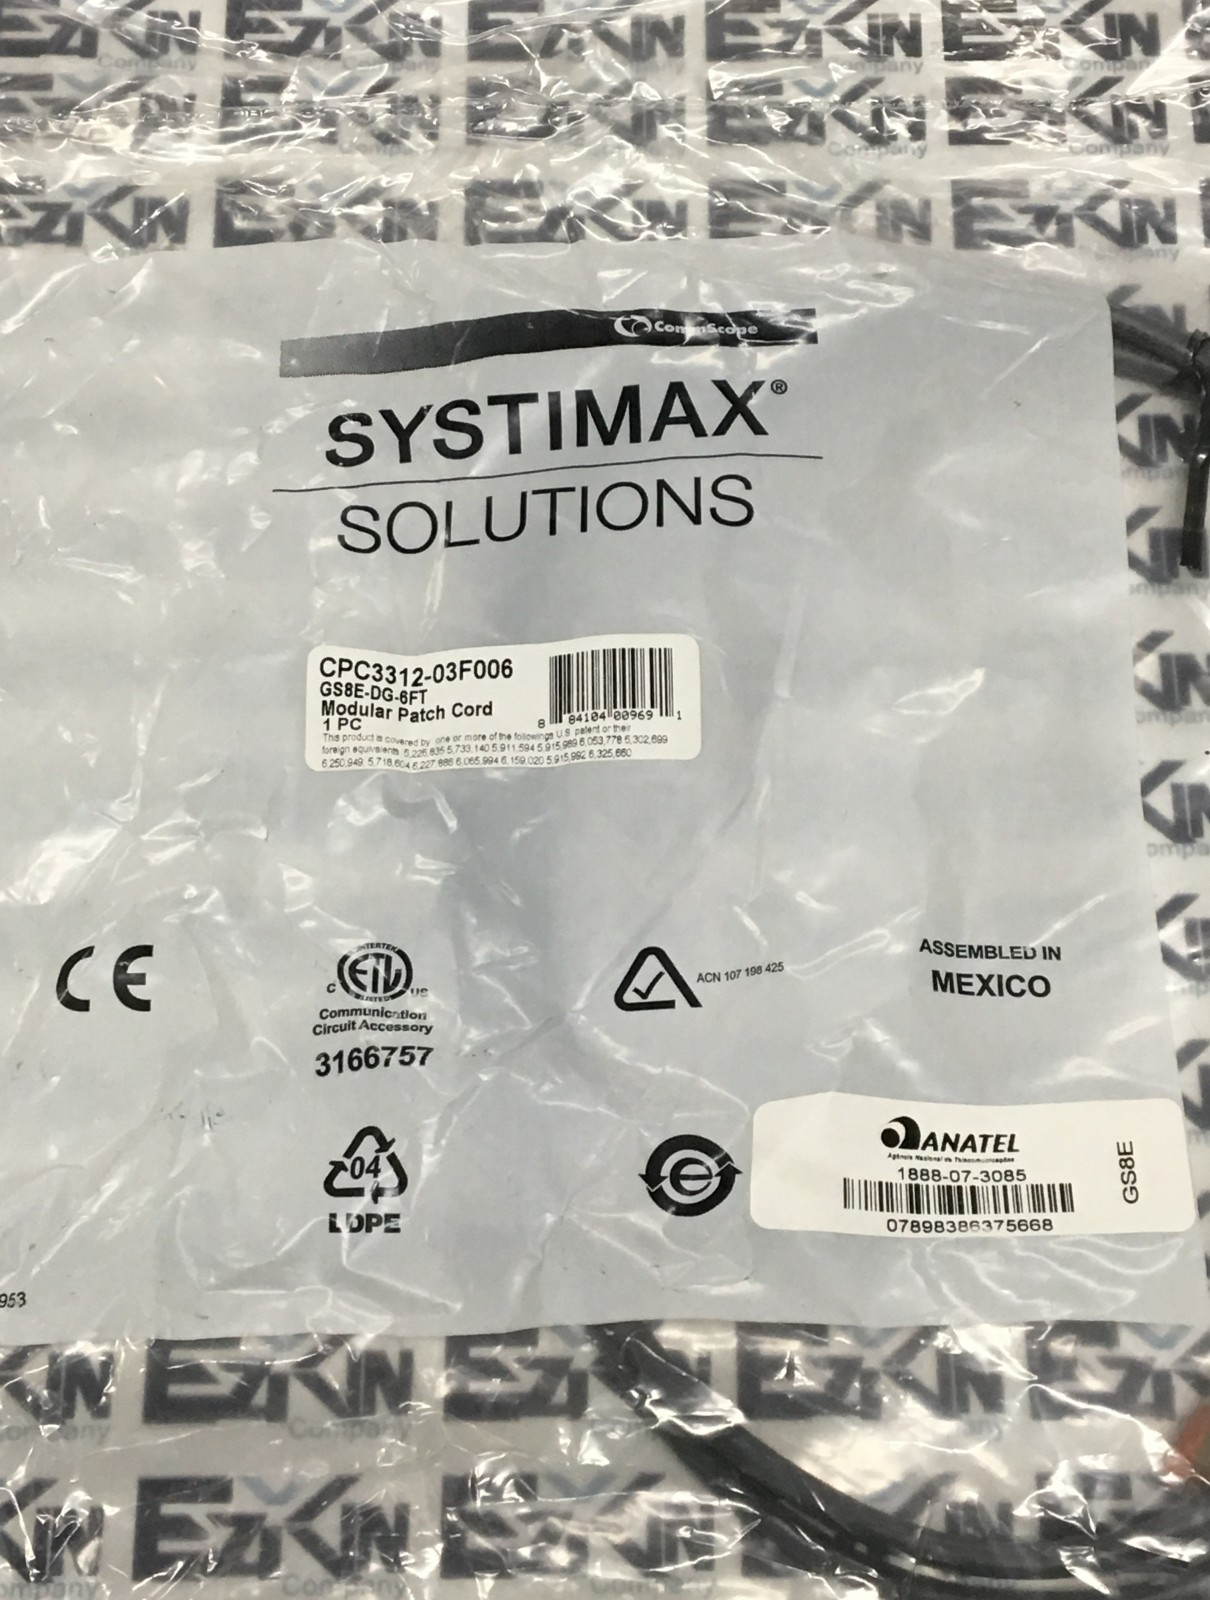 Commscope Systimax CPC3312-03F006 Cat 6 Patch Cord 6 ft GS8E-DG-6FT (Lot of 10)